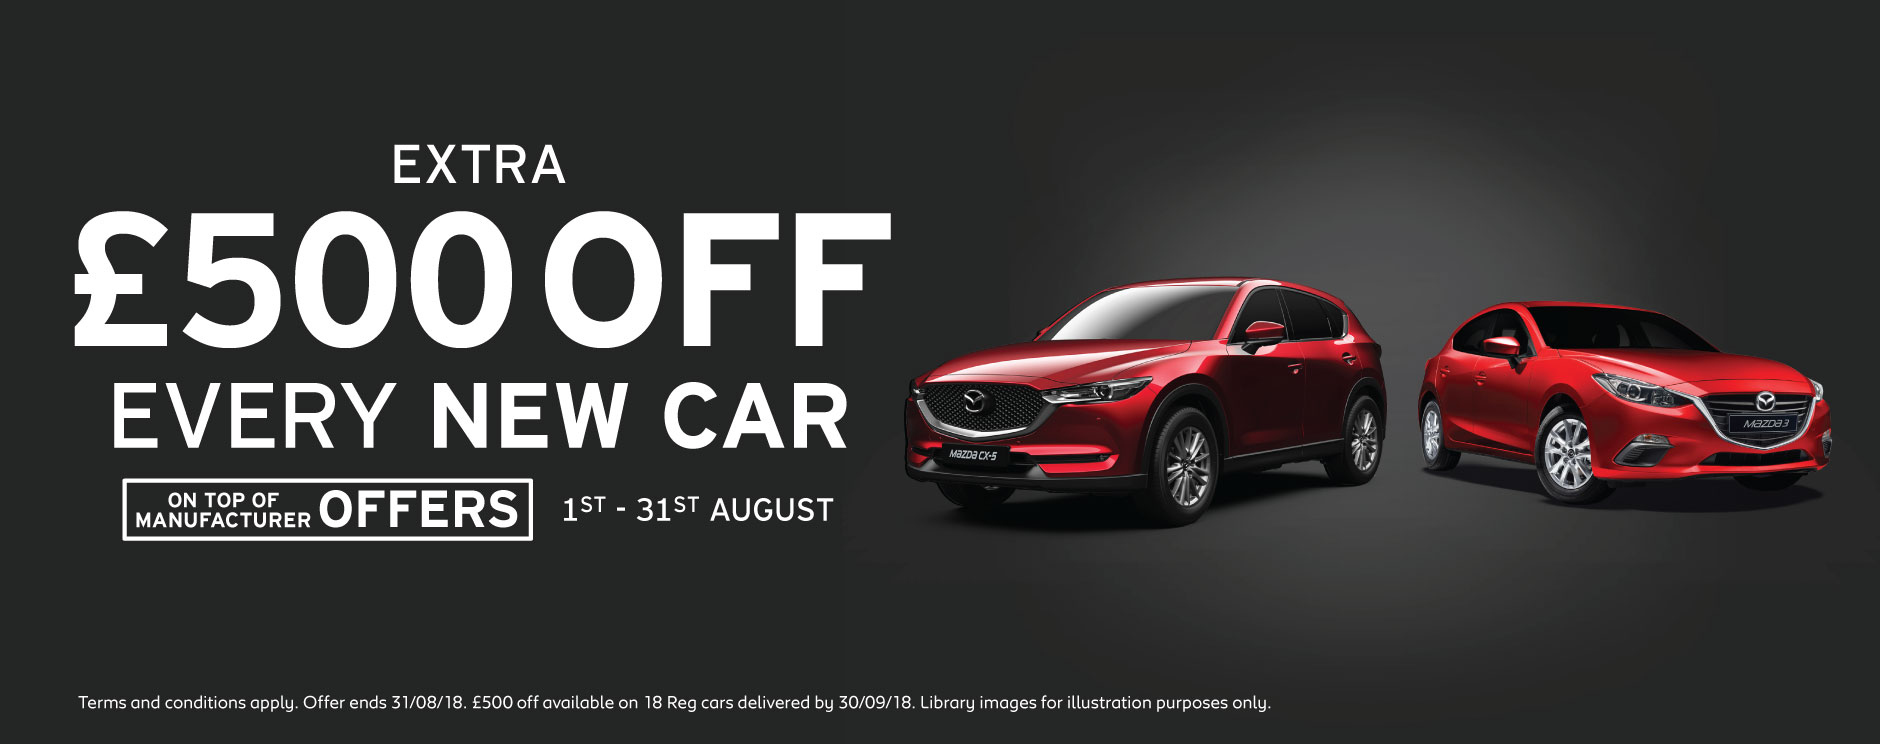 �500 Off New Car August 2018 - Mazda